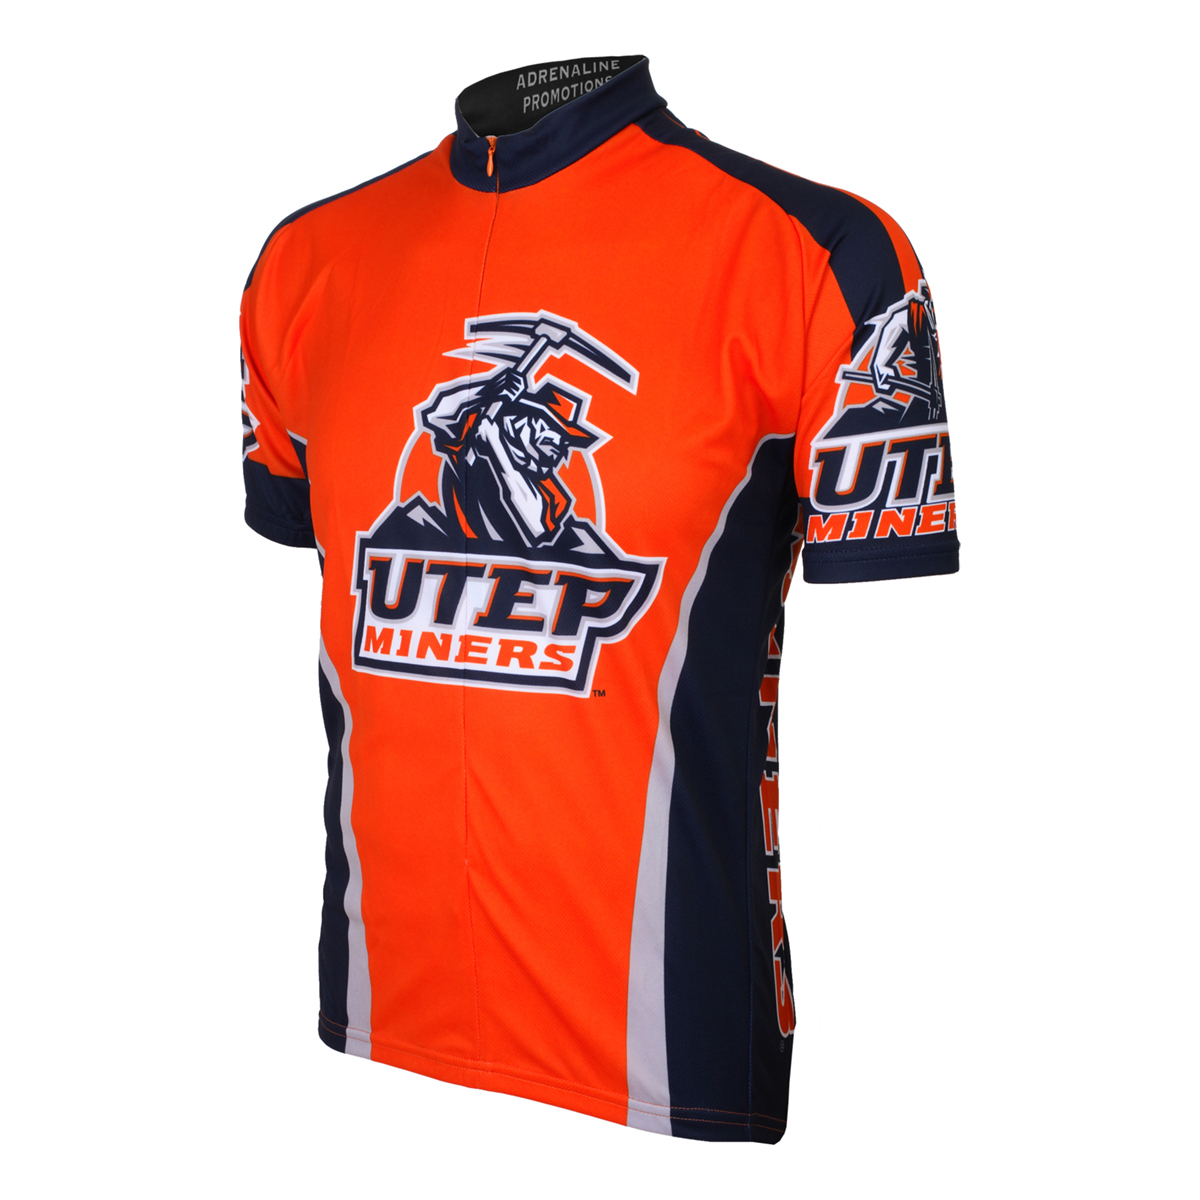 Adrenaline Promotions University of Texas at El Paso Miners Cycling Jersey